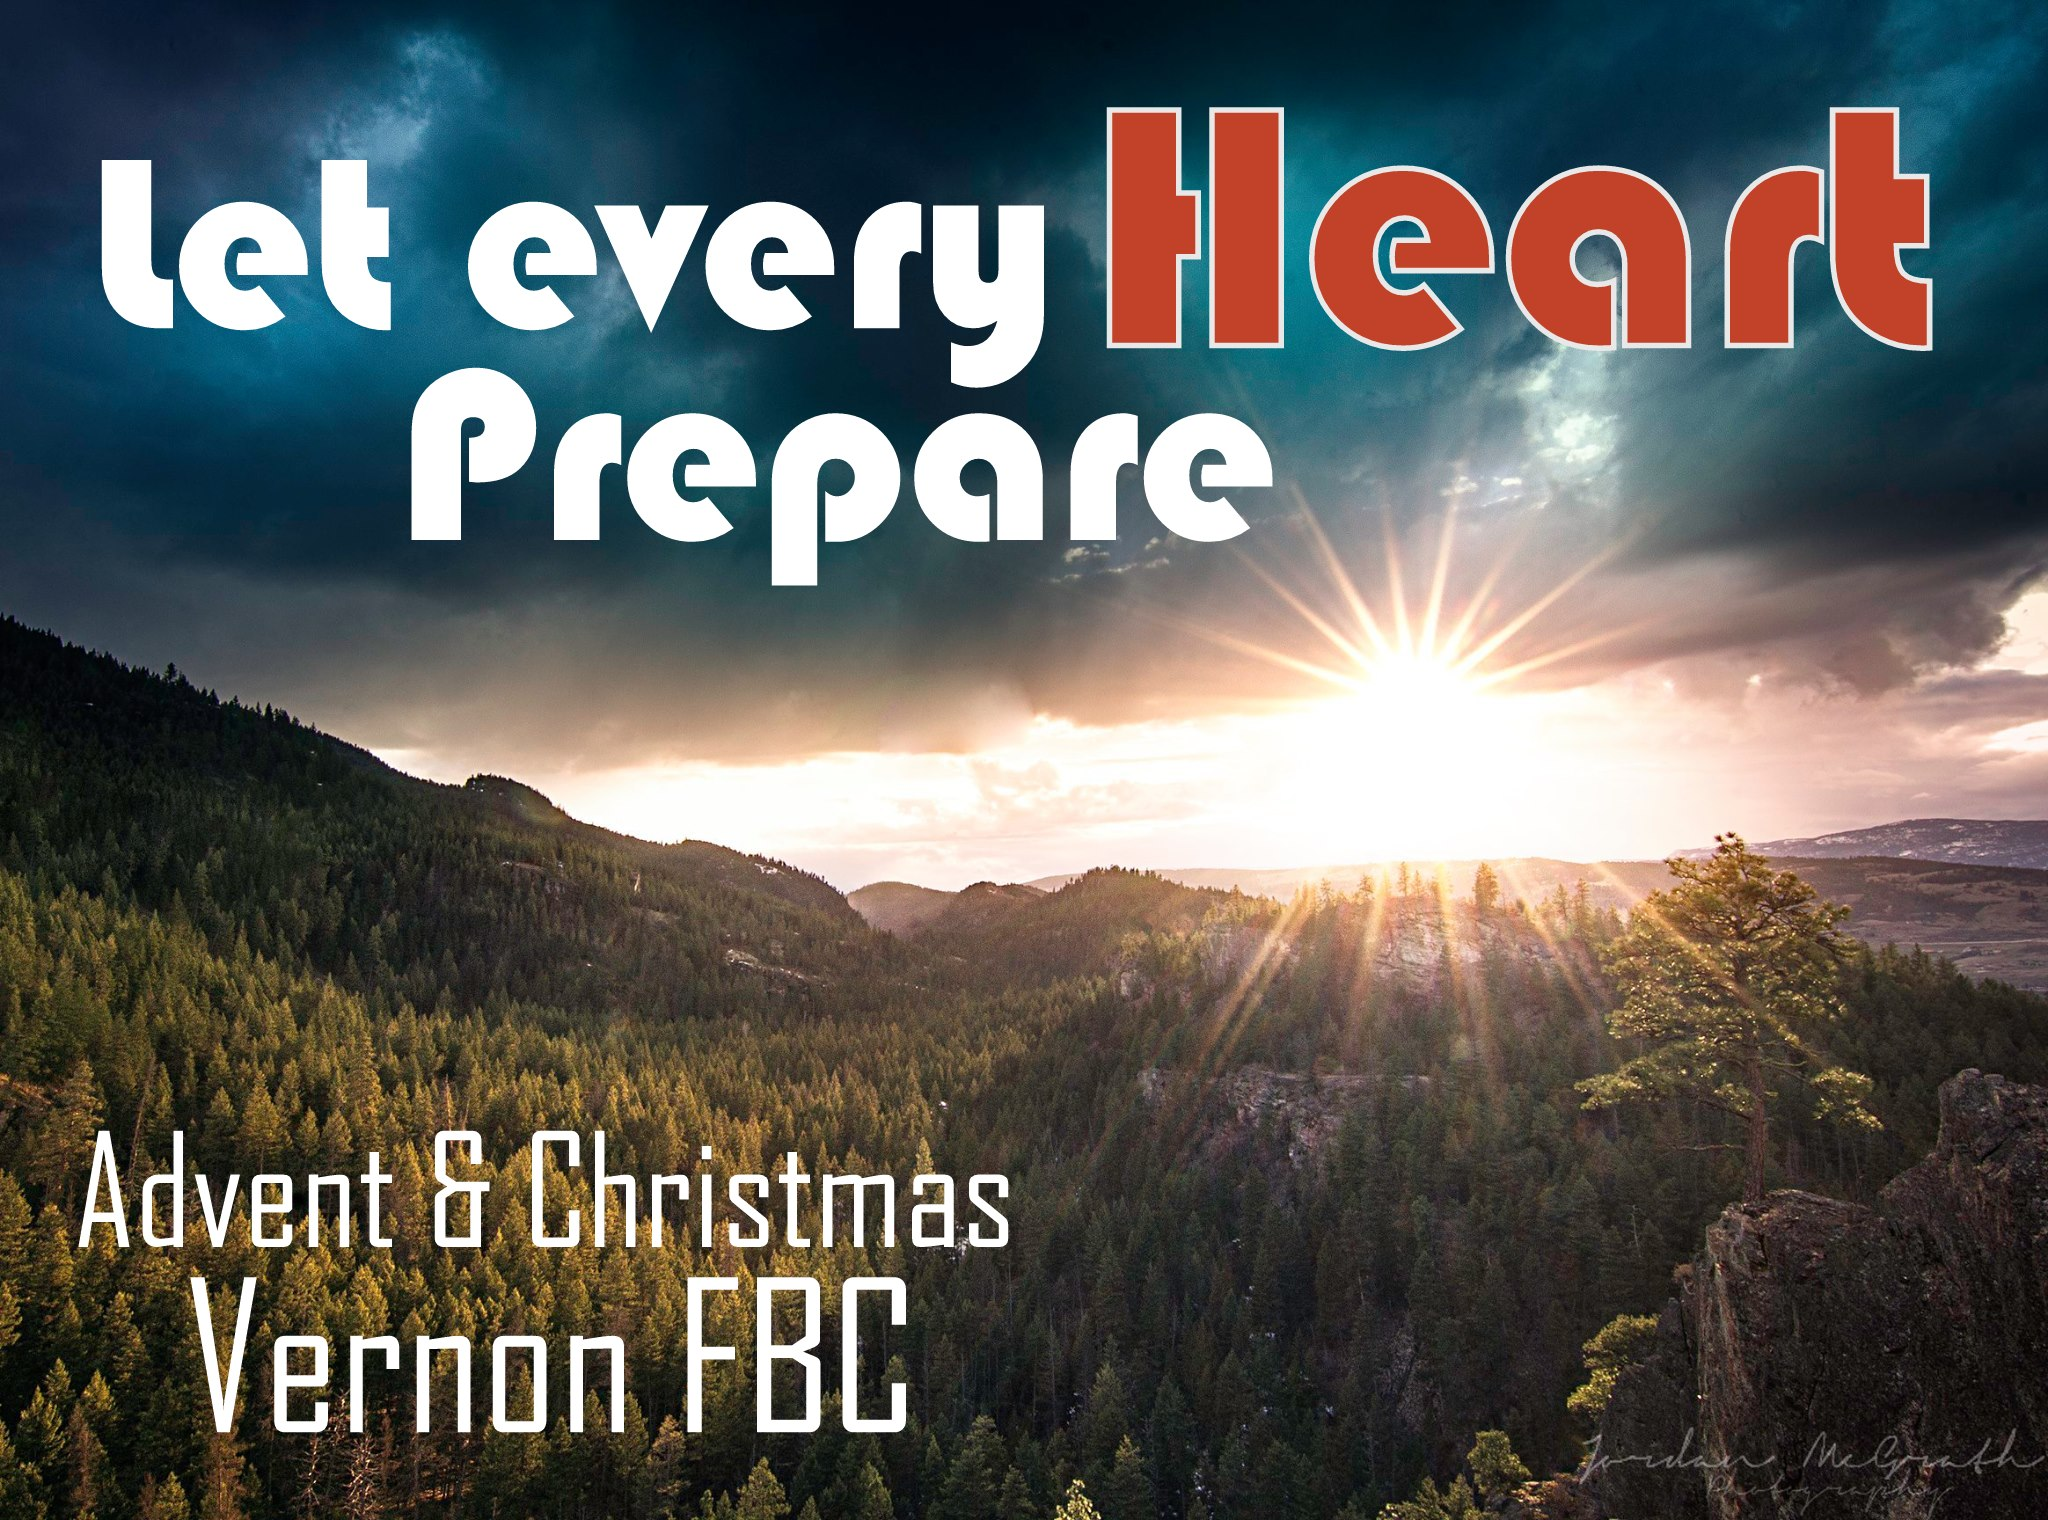 Prepare for… Love - December 23, 2018 Randy HammLuke 1:26-38Mary was highly favoured, but so are we. Just what is this love like that Jesus calls us to, that Mary models?